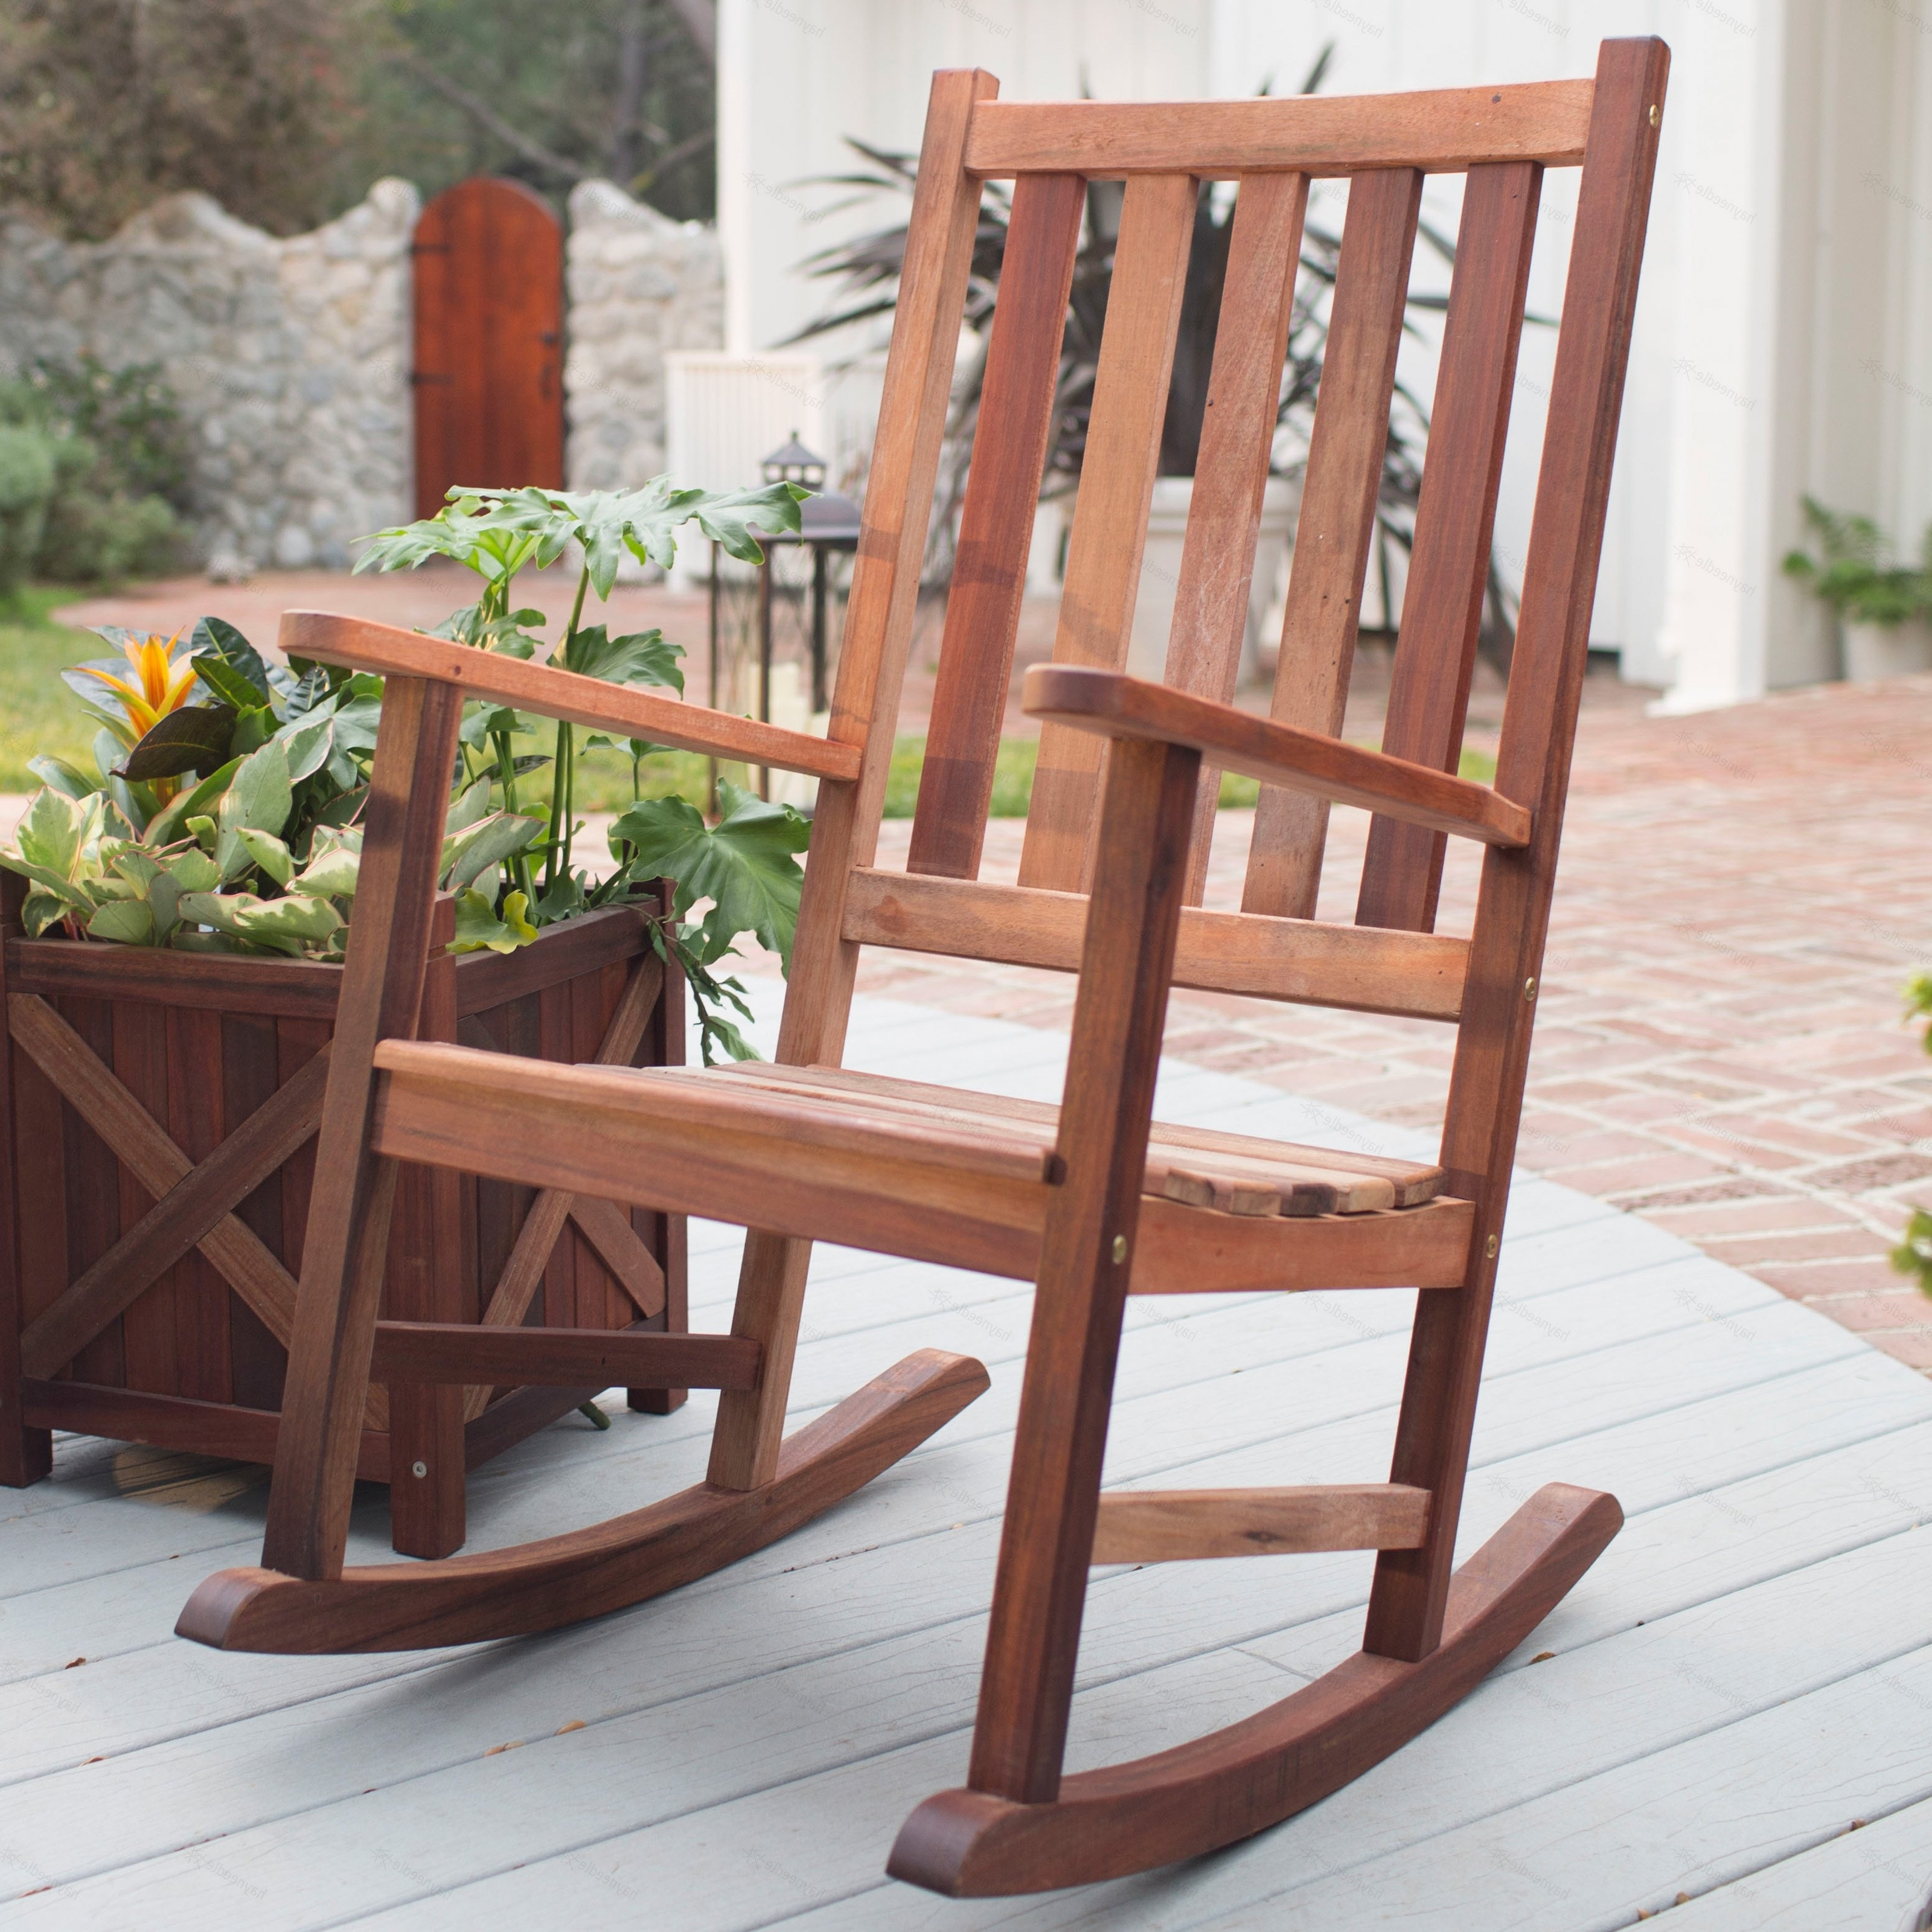 2018 Enjoy A Comfortable Swing With Rocking Chair – Bellissimainteriors Within Vintage Outdoor Rocking Chairs (View 13 of 15)